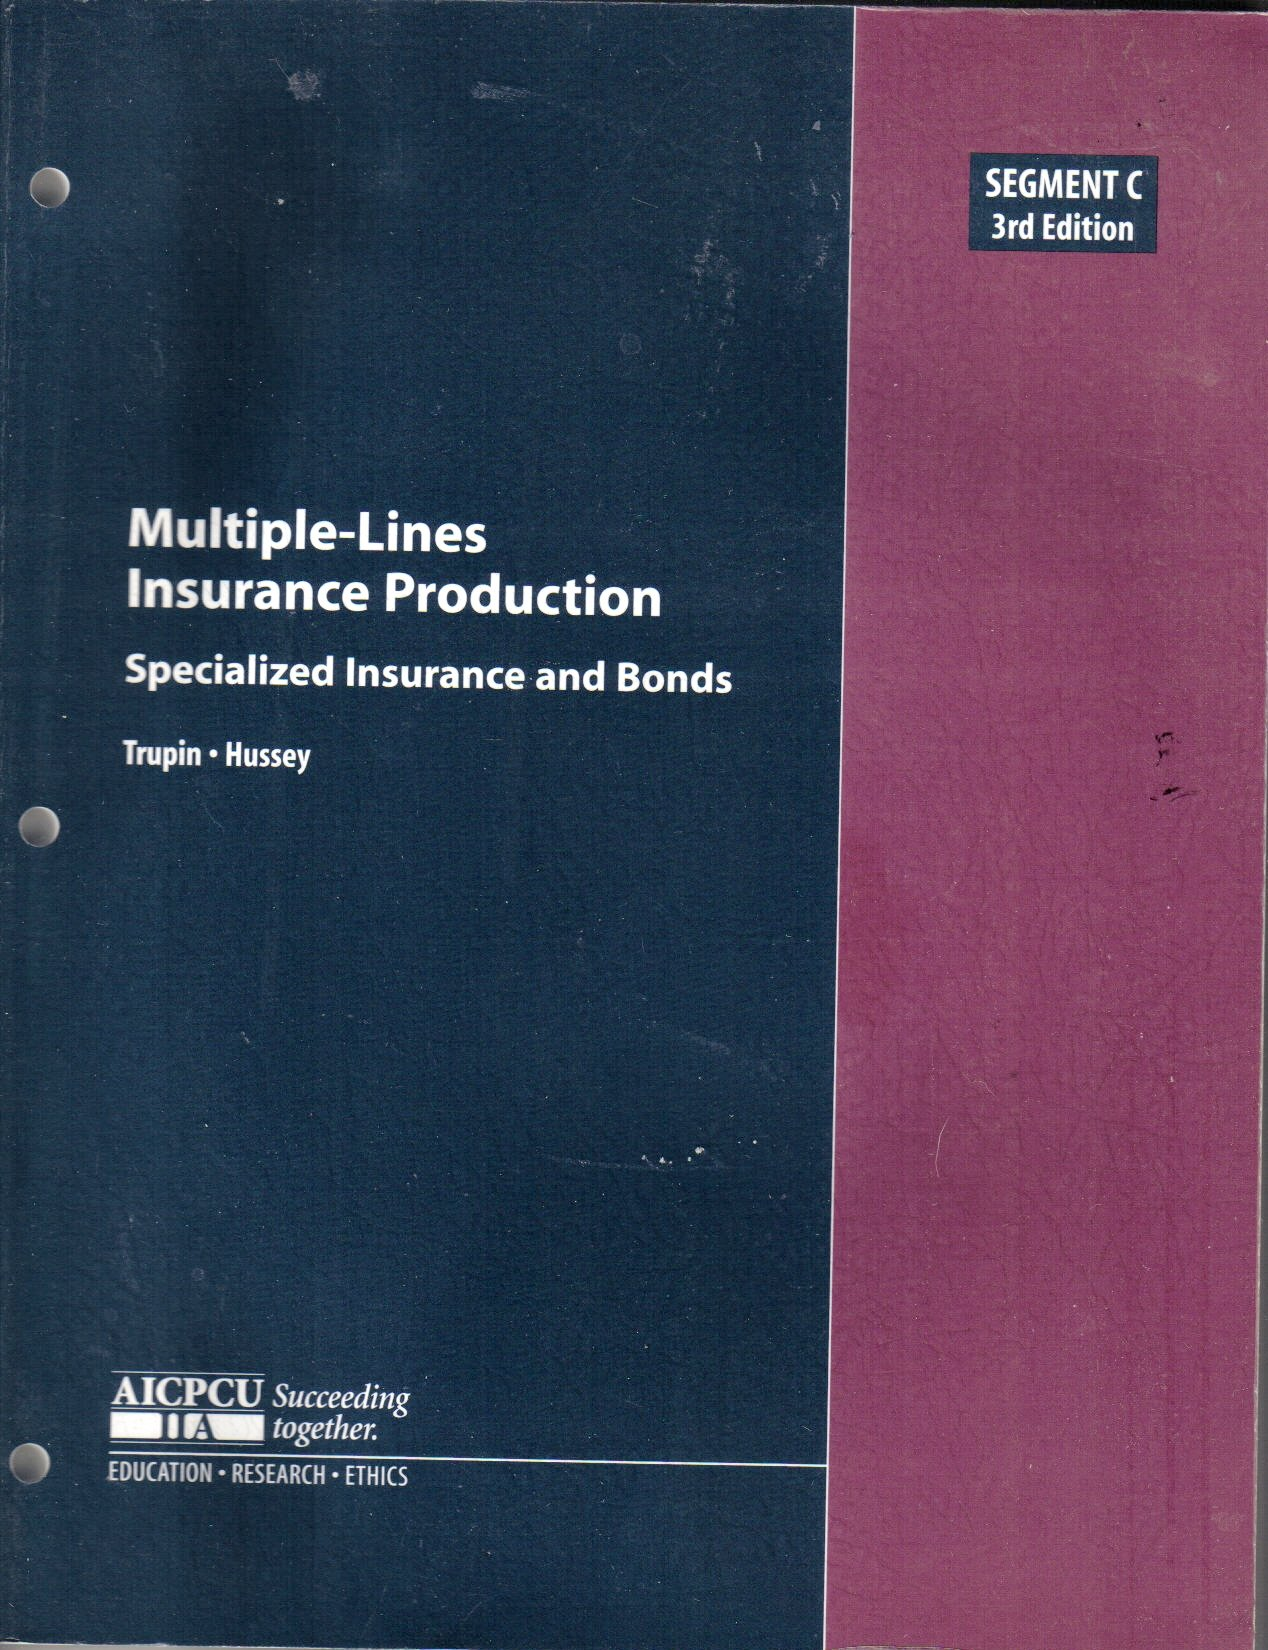 Multiple-Lines Insurance Production - Specialized Insurance and Bonds (3rd Edition, Segment C) pdf epub